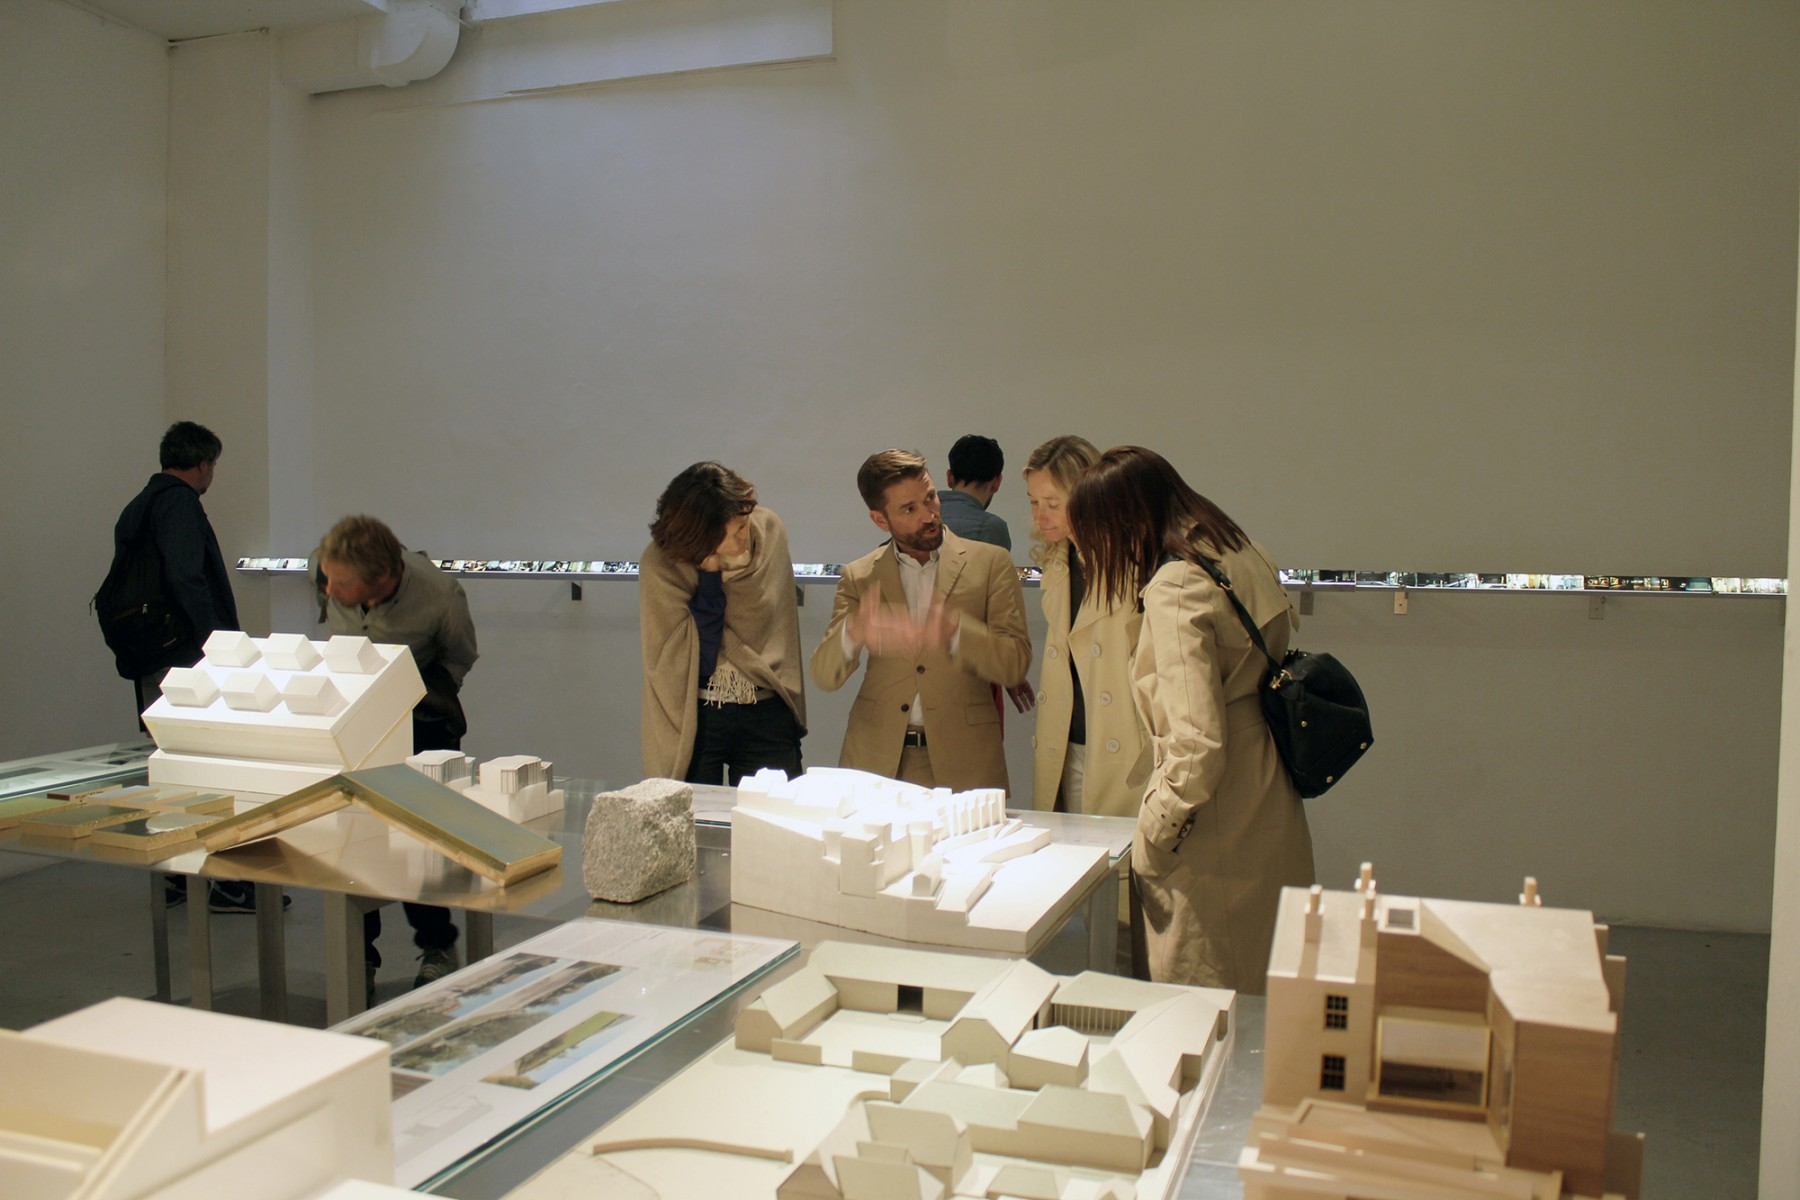 Jamie-Fobert-Architects-working-in-architecture-exhibition-Galerie-d'Architecture (2)